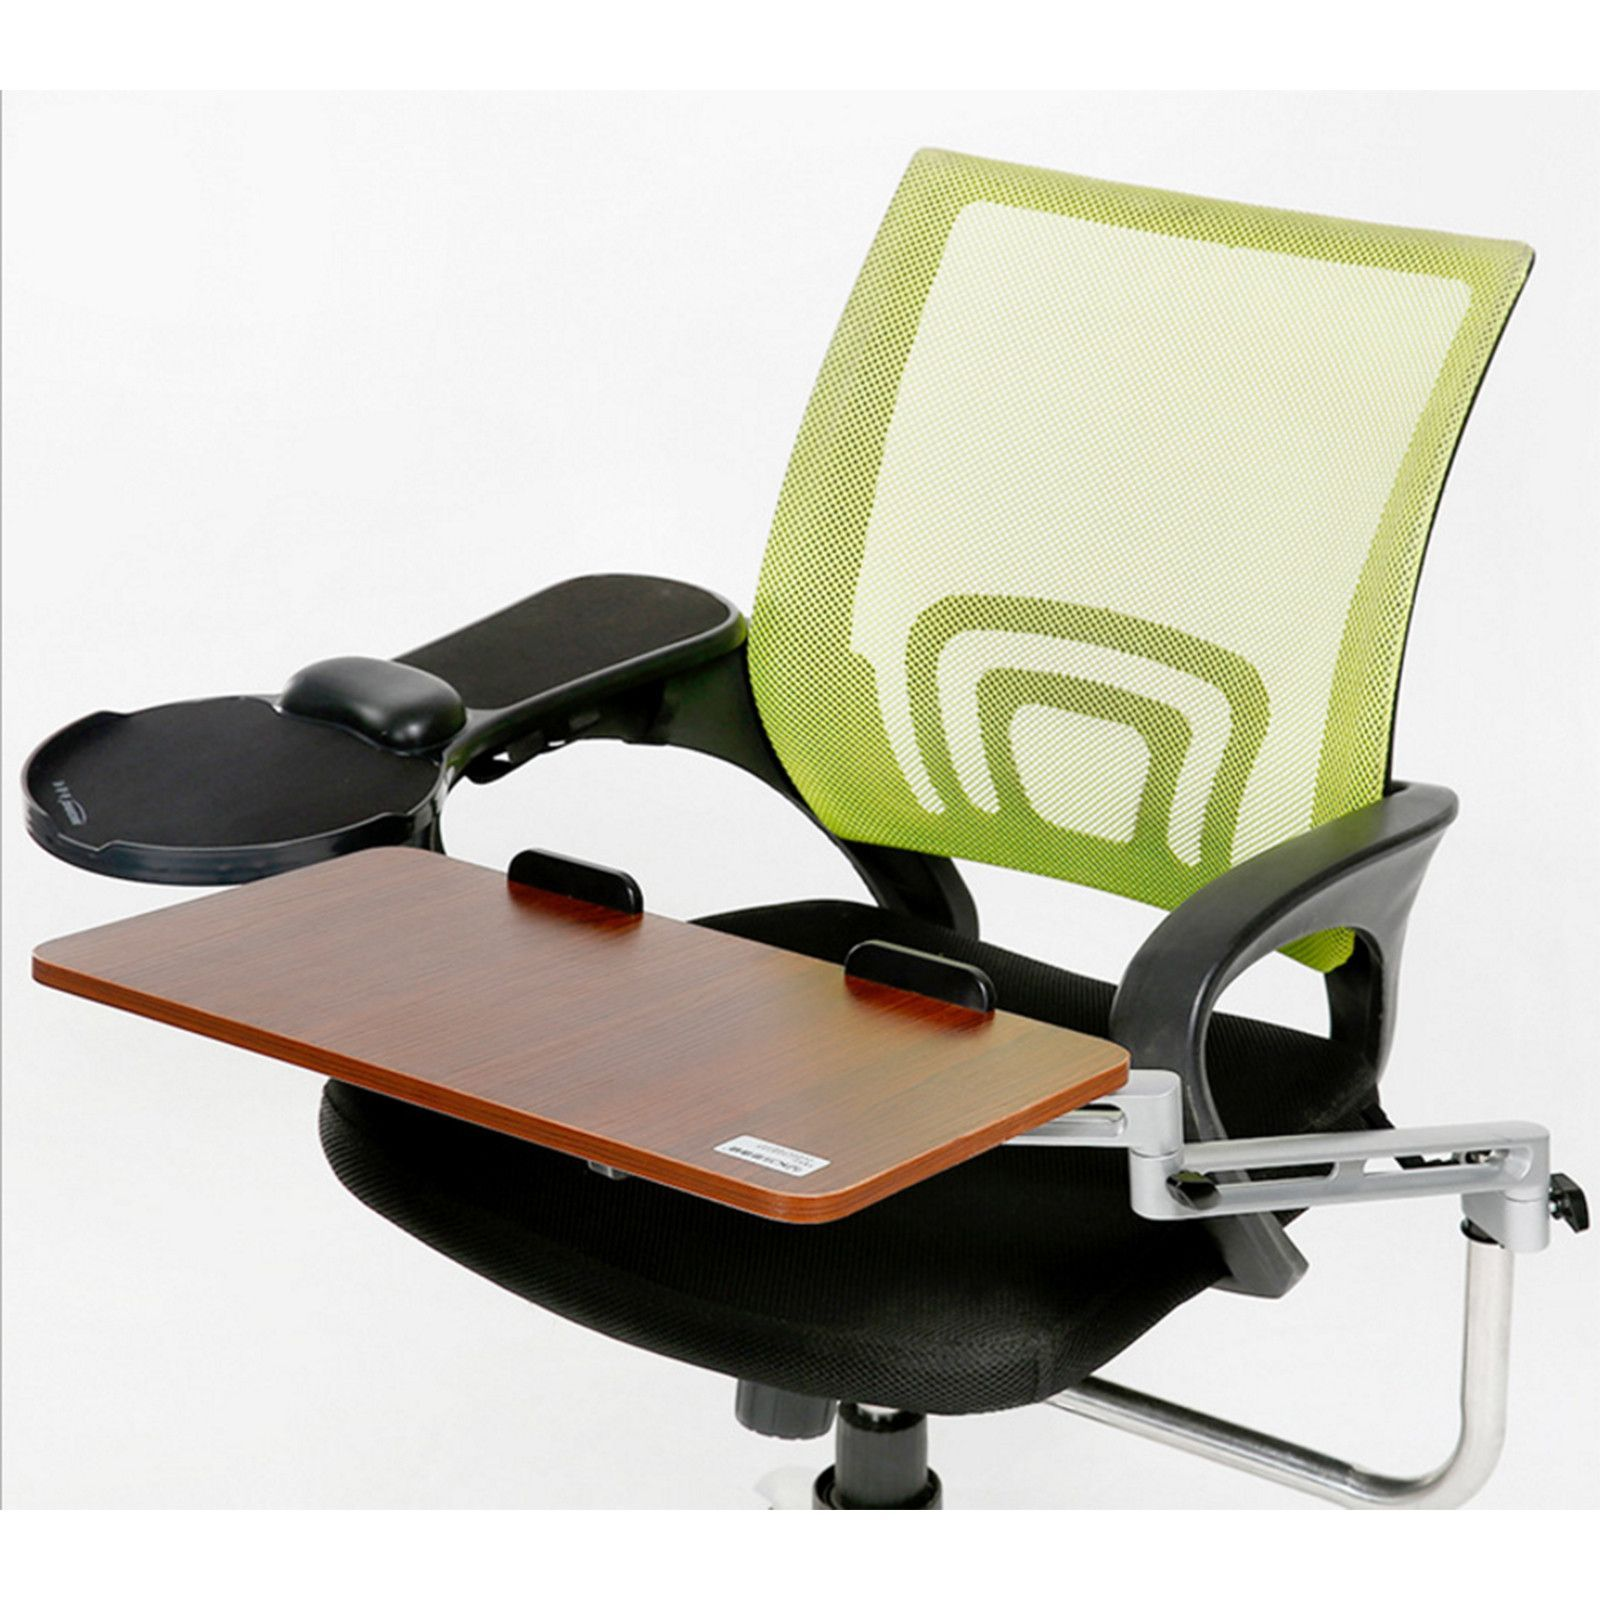 ergonomic chair mount laptop keyboard mouse tray system arm stand trays steel and woods. Black Bedroom Furniture Sets. Home Design Ideas